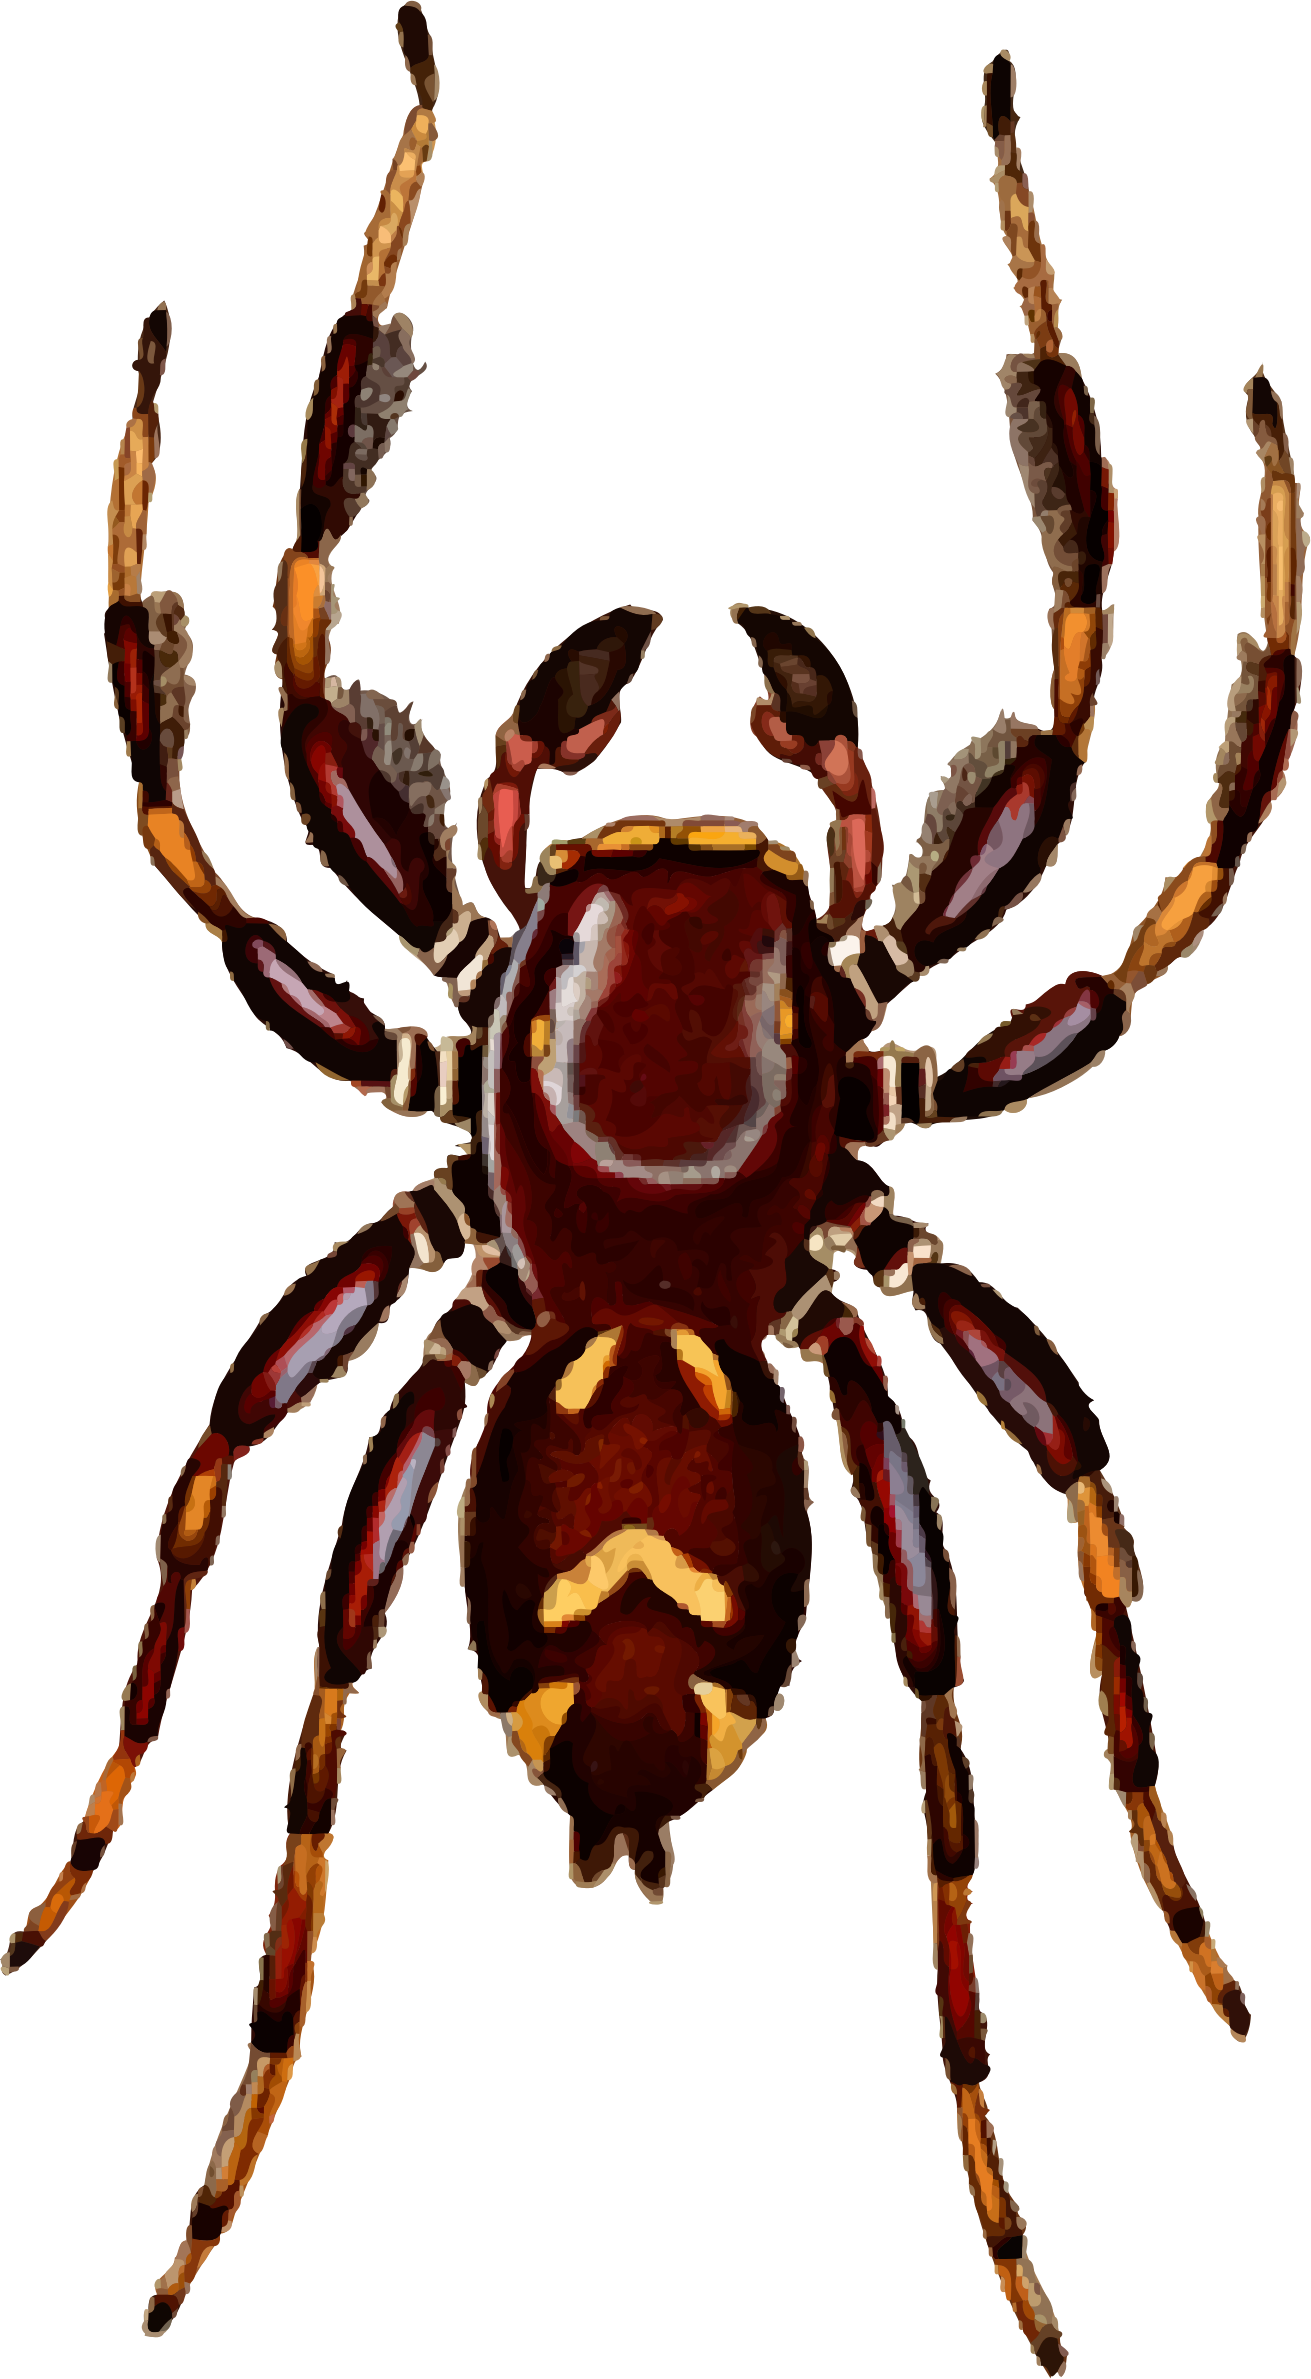 Regal big image png. Spider clipart jumping spider